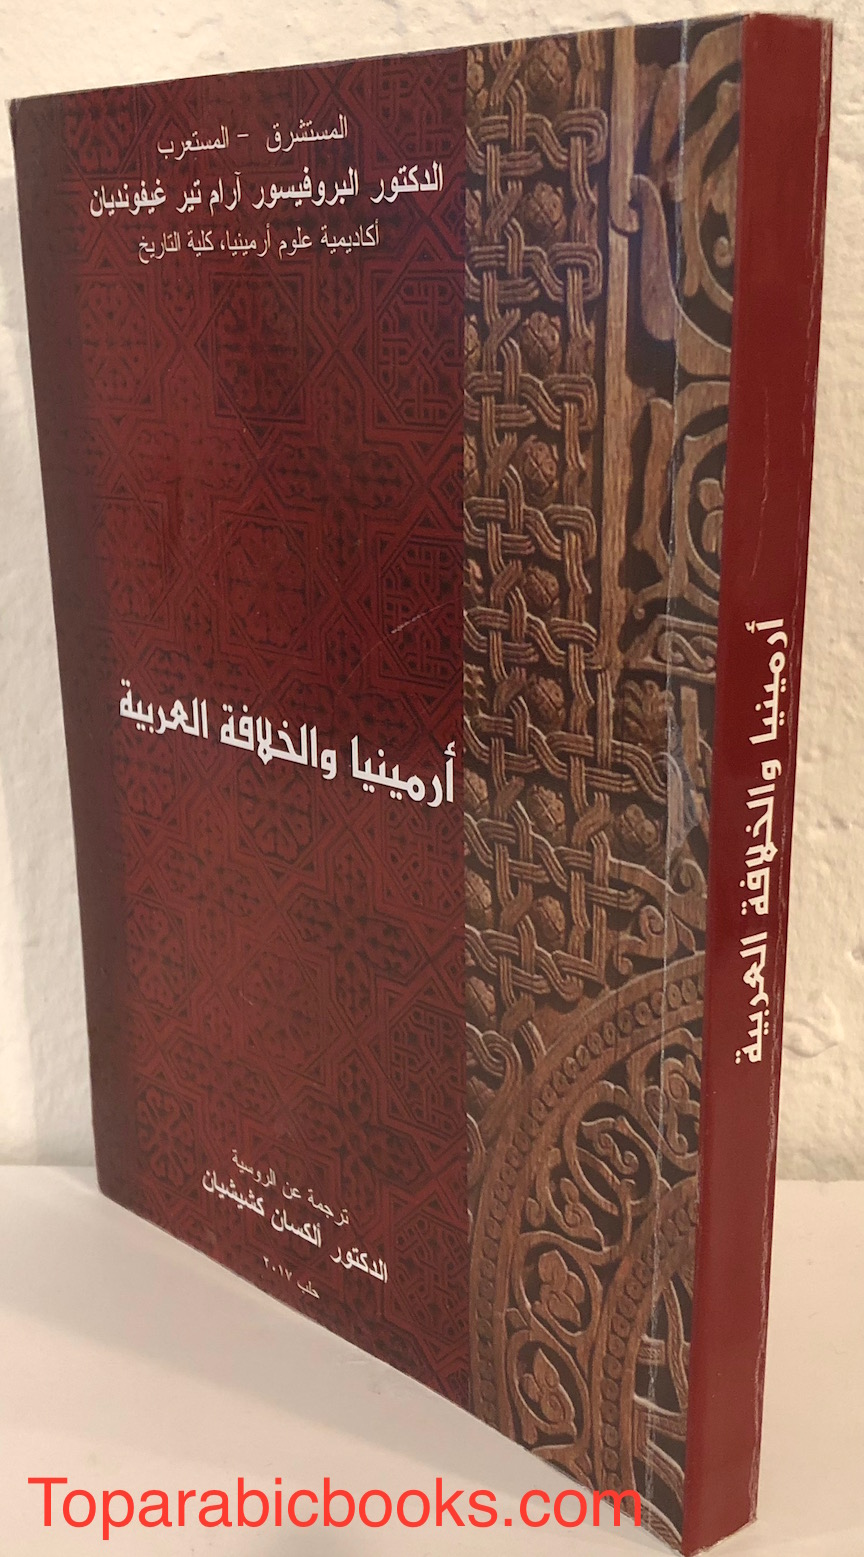 https://toparabicbooks.com/wp-content/uploads/2019/05/أرمينيا-والخلافة-العربية.jpg